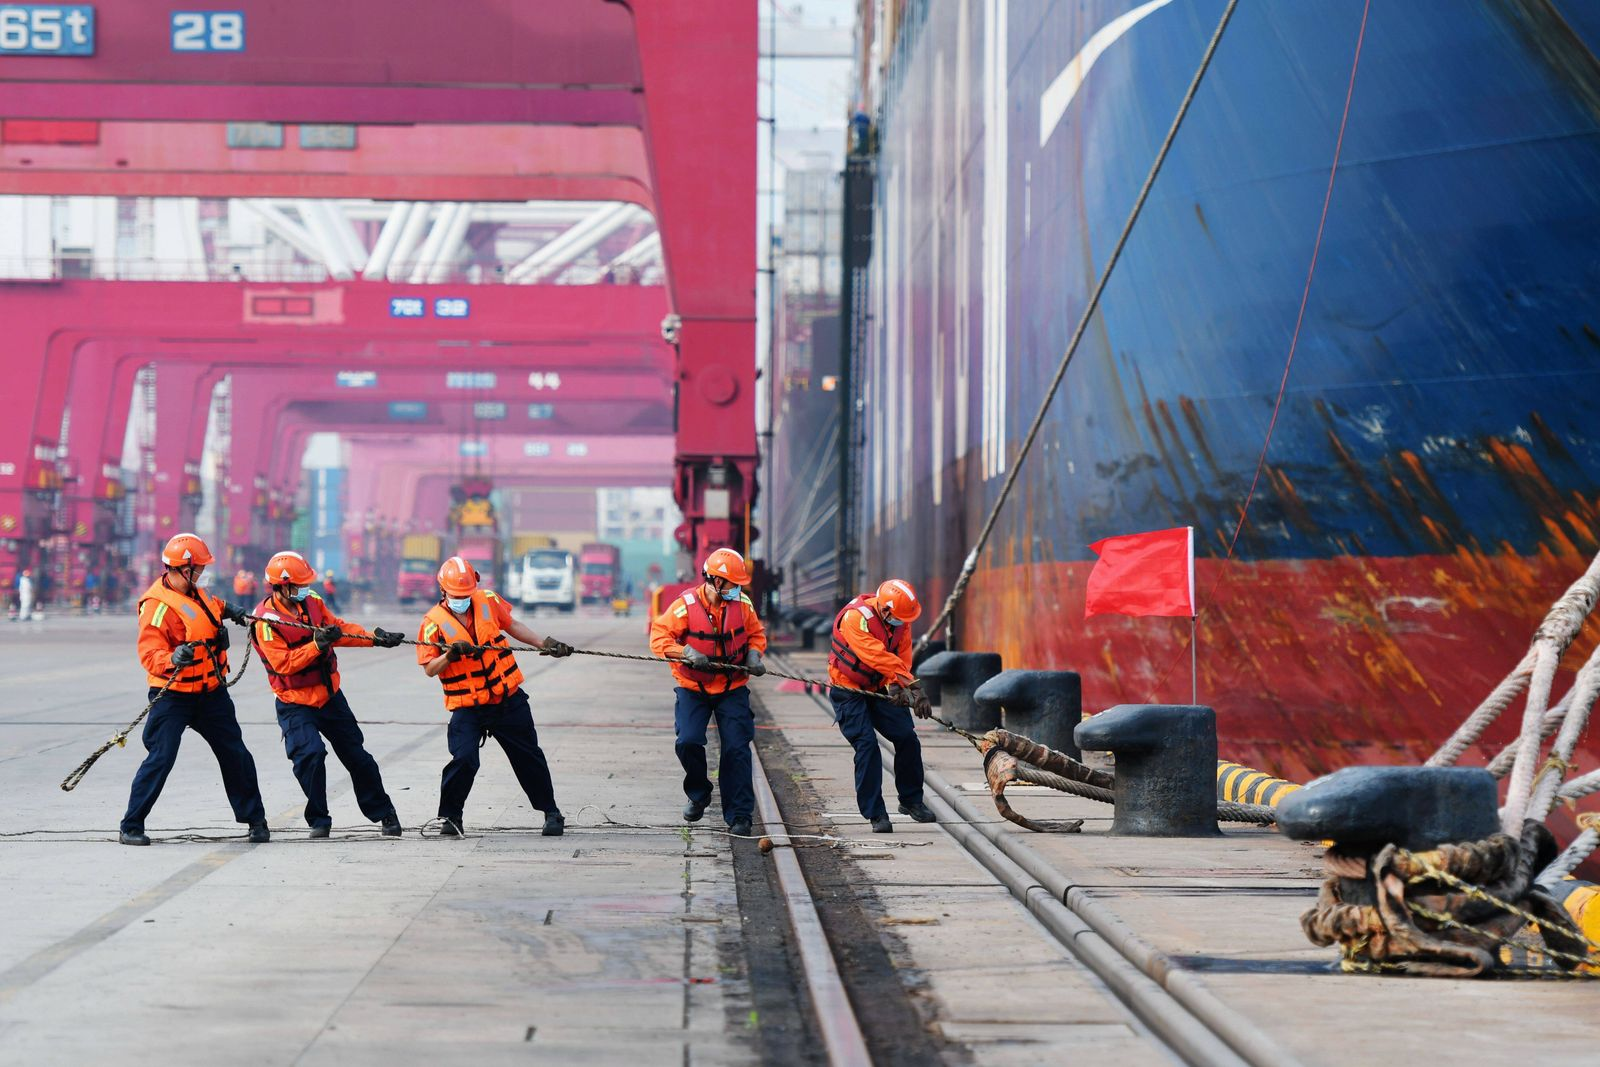 QINGDAO, CHINA - JUNE 02: Dock workers pull the mooring line of a cargo ship at Qingdao Port on June 2, 2020 in Qingdao